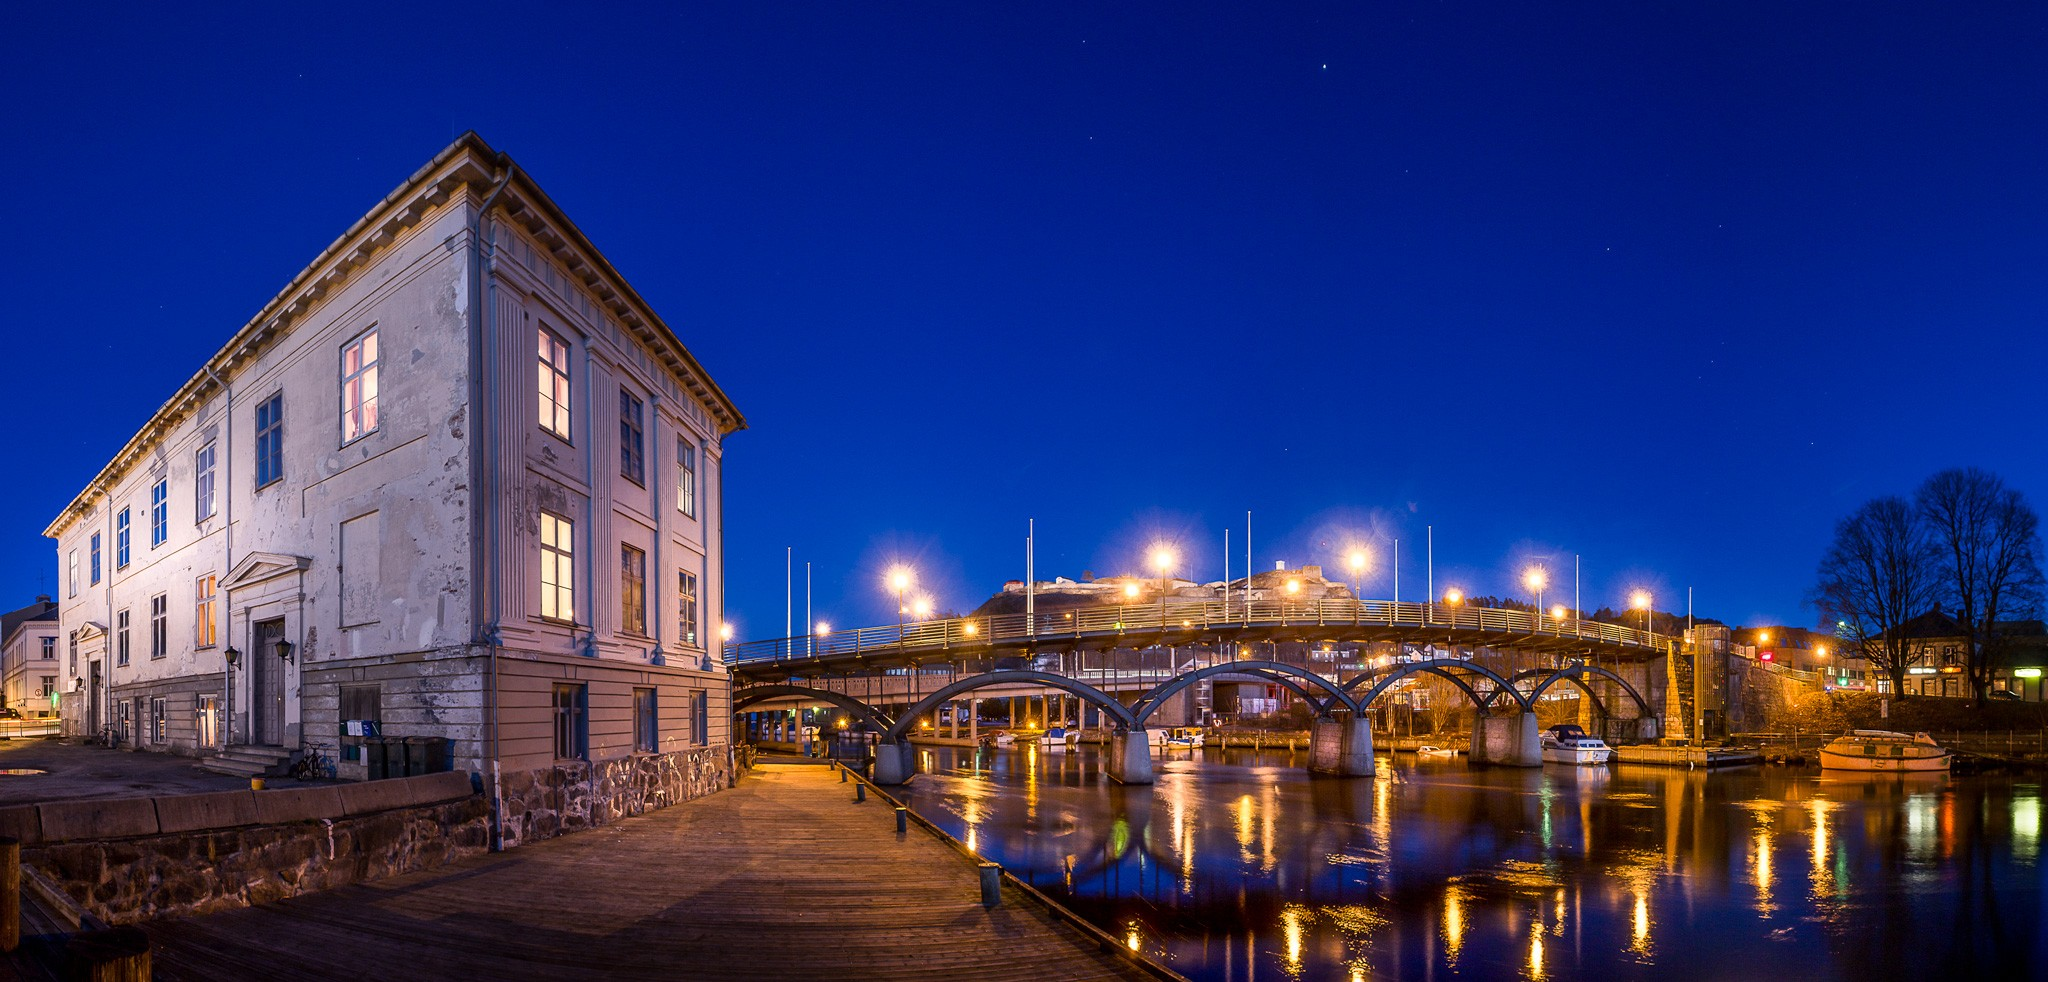 General 2048x982 Norway dusk bridge street light pier town city